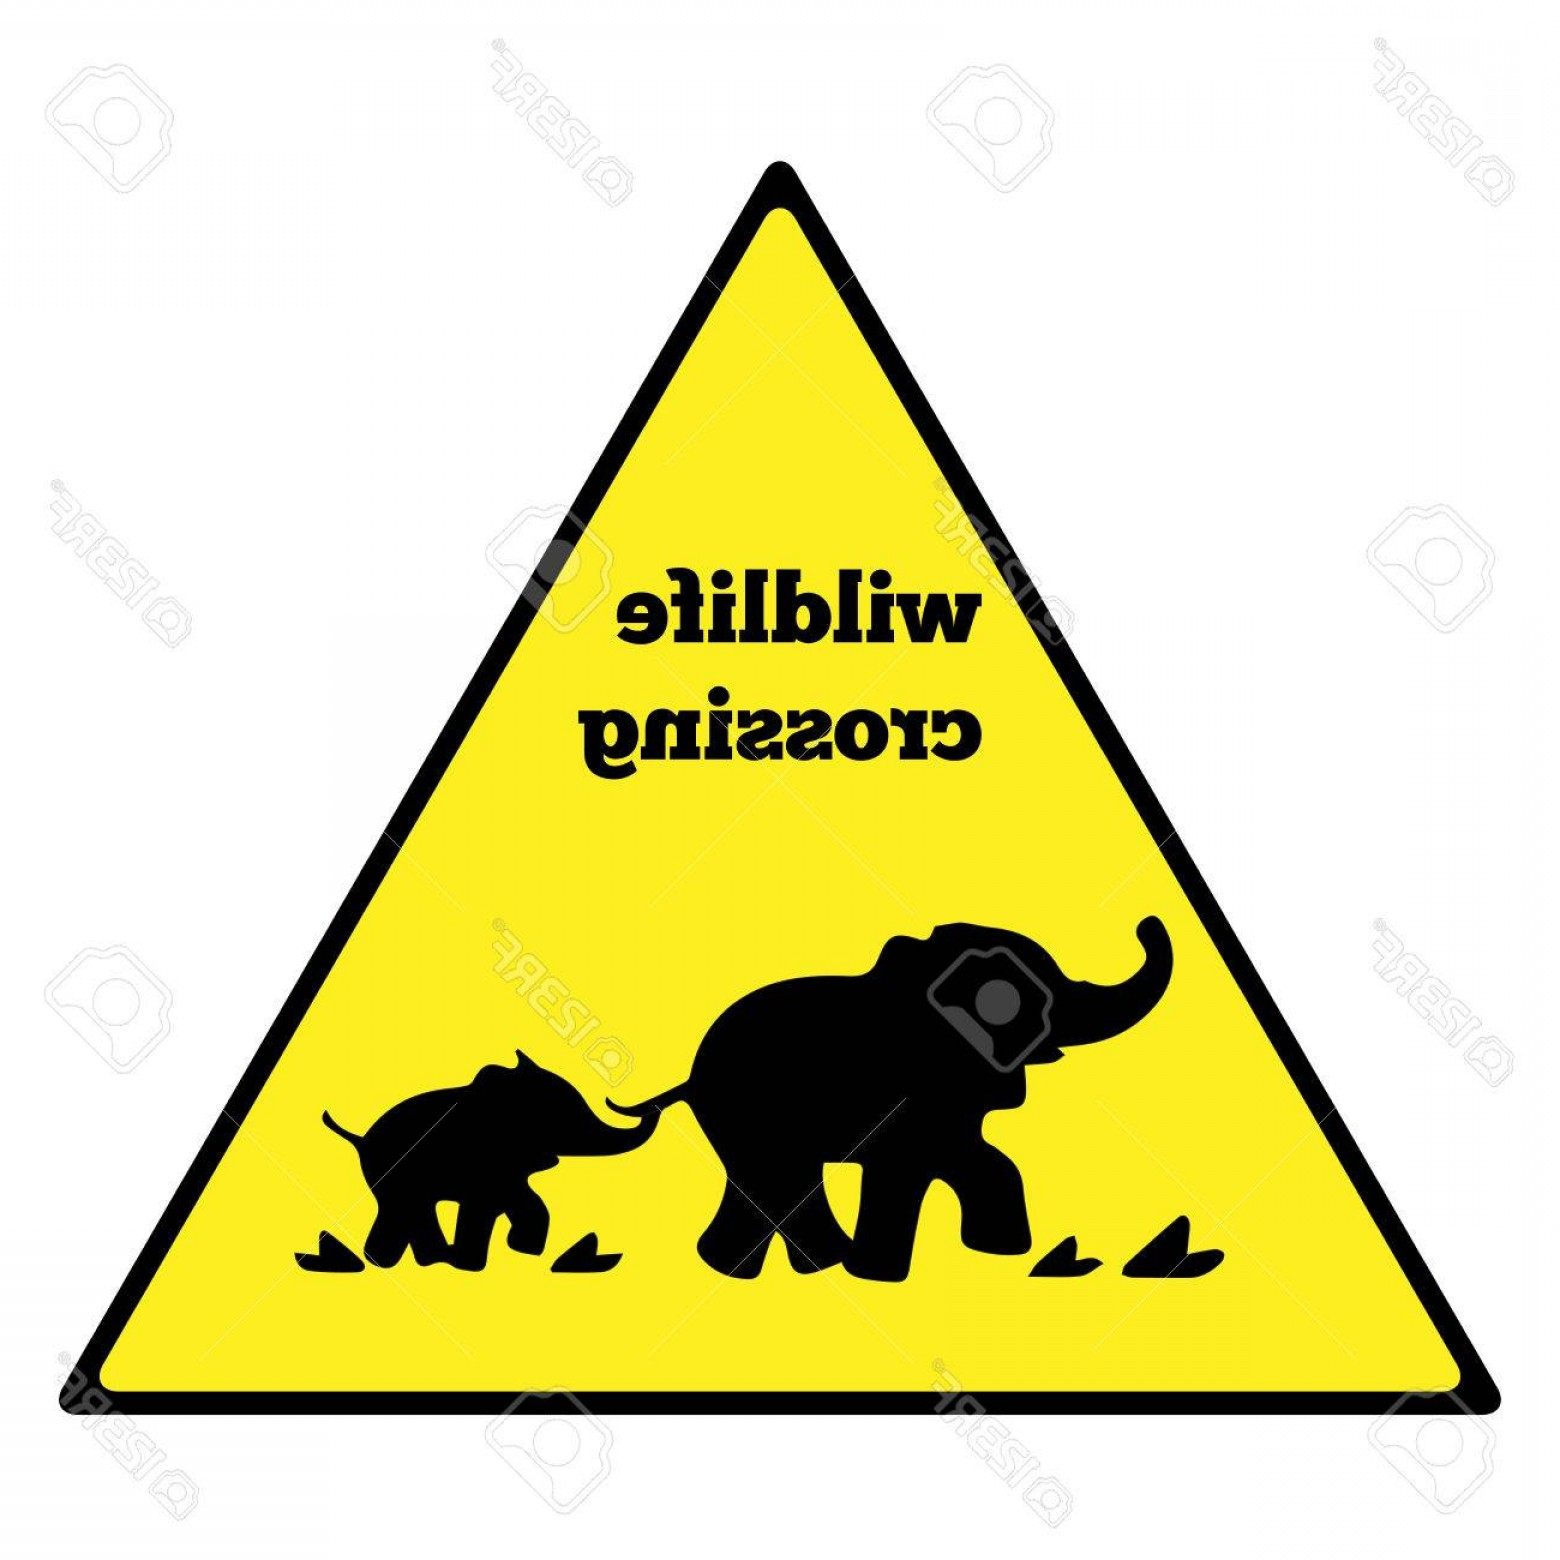 Road Sign Silhouette Vector Bear: Photostock Vector Beware Elephant Traffic Sign Elephant Warning Traffic Sign Warning Traffic Sign Isolated On A White